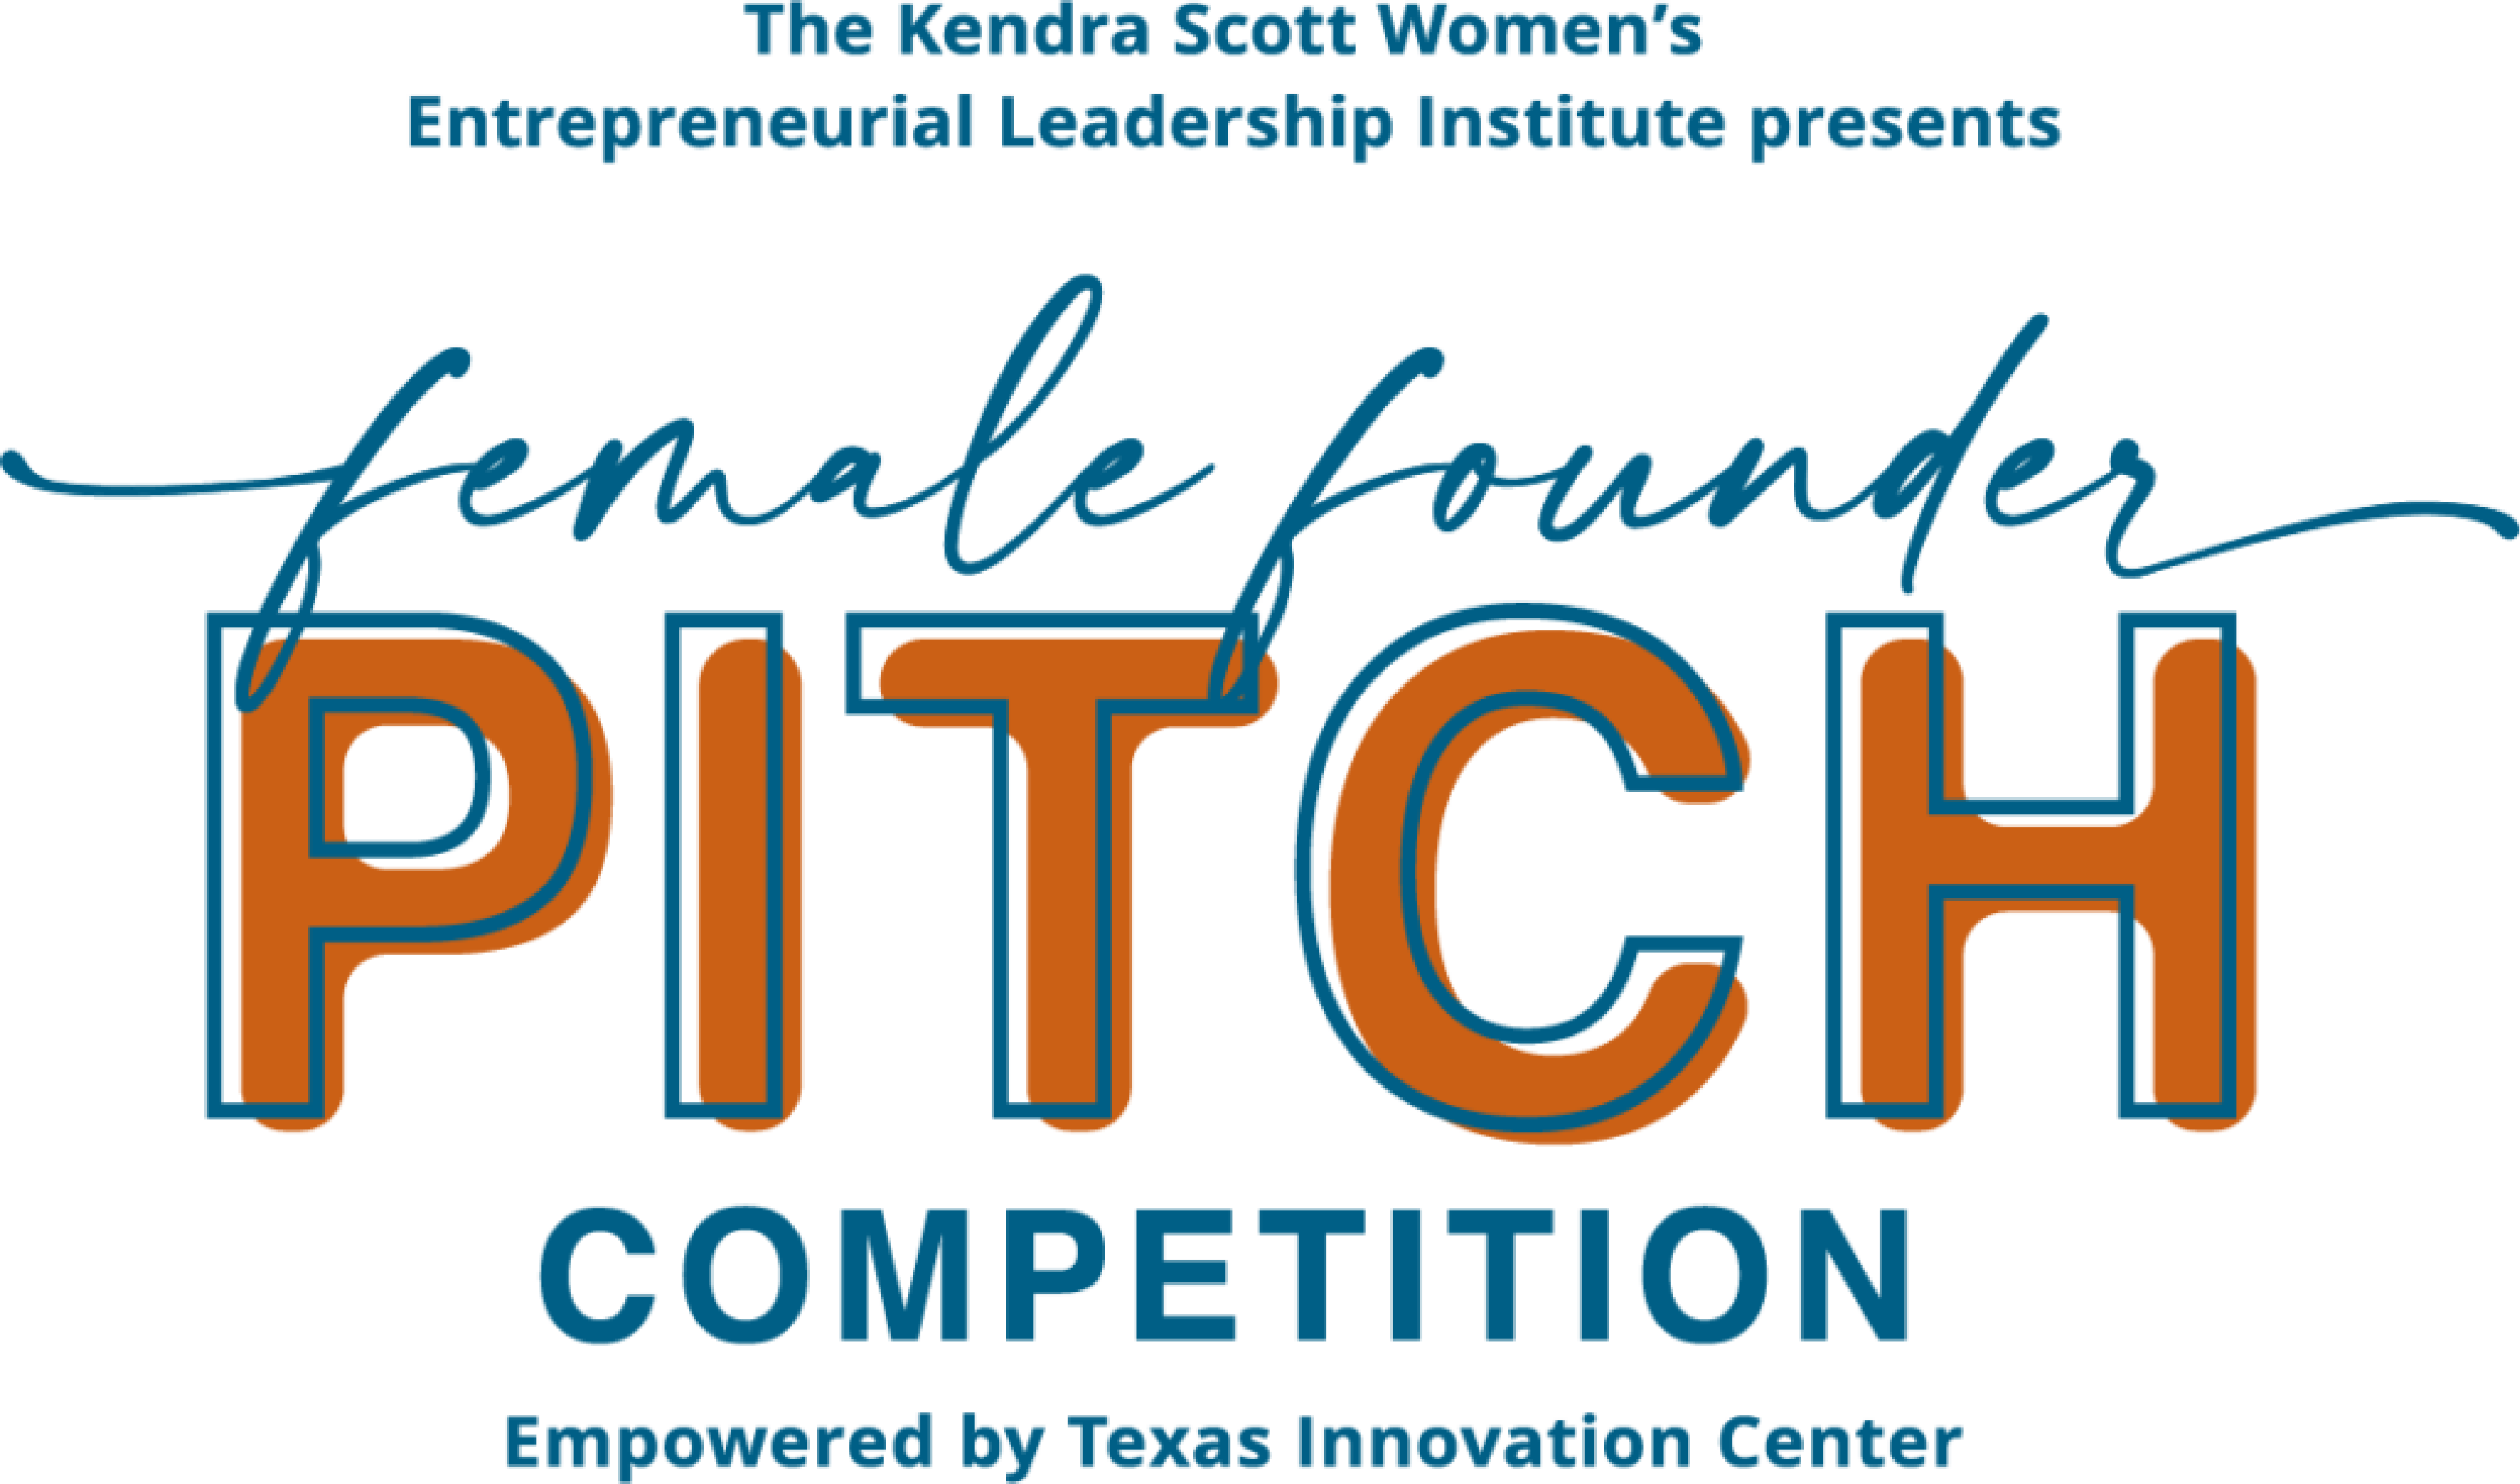 The Kendra Scott Women's Entrepreneurial Leadership Institute Presents Female Founder Pitch Competition, Empowered by Texas Innovation Center